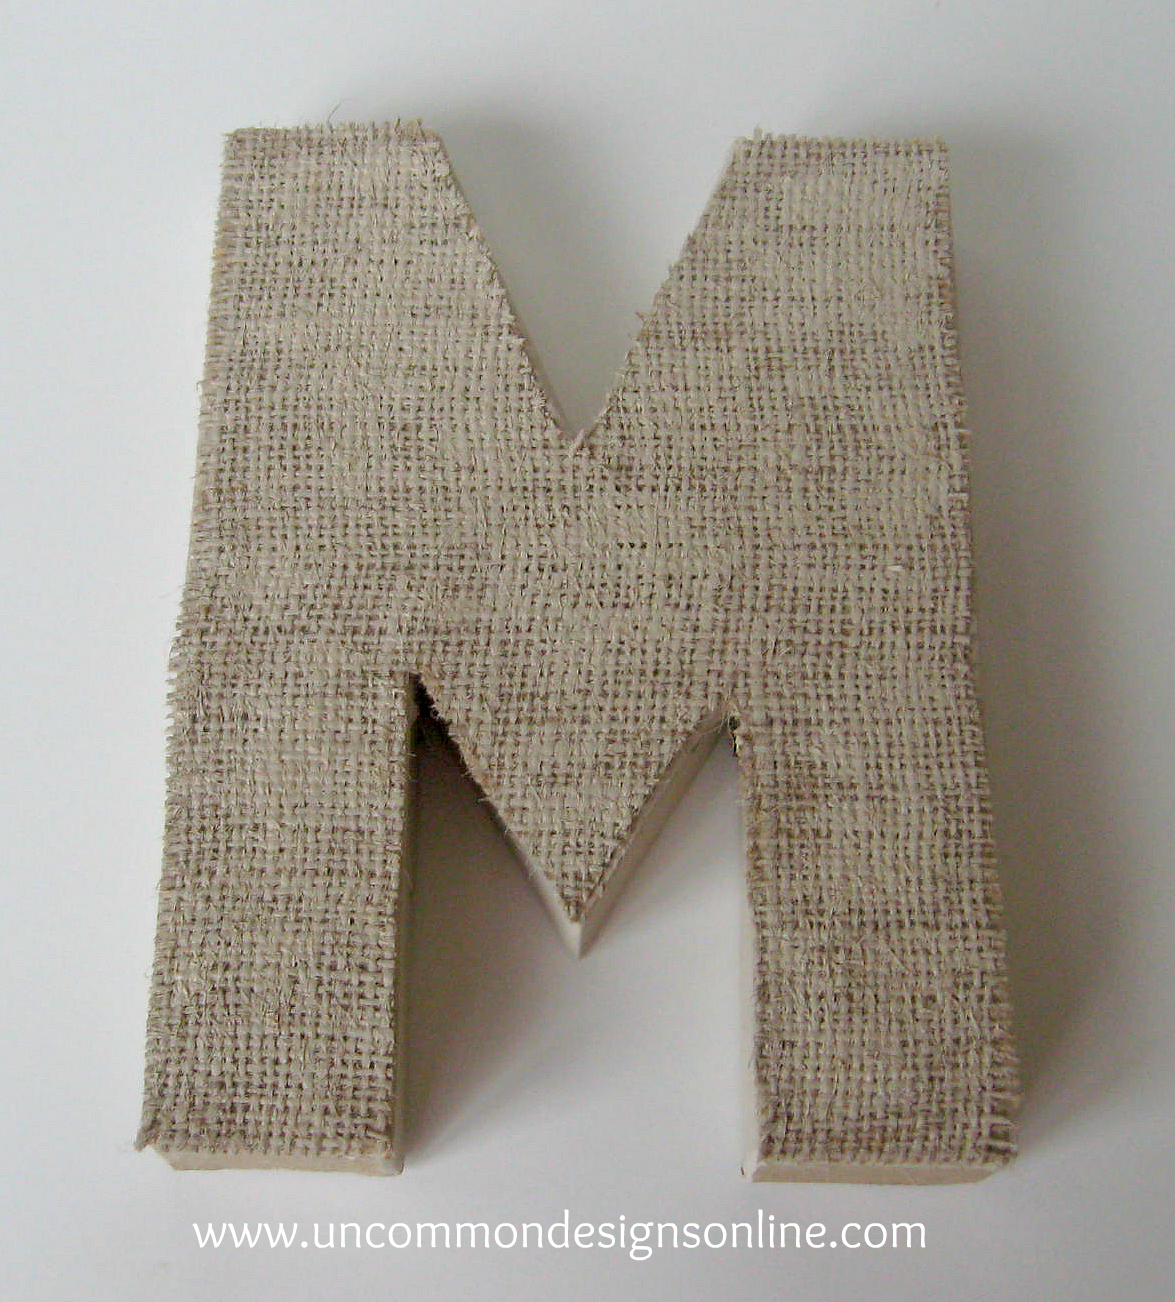 Burlap Covered Letters - Step by Step Instructions